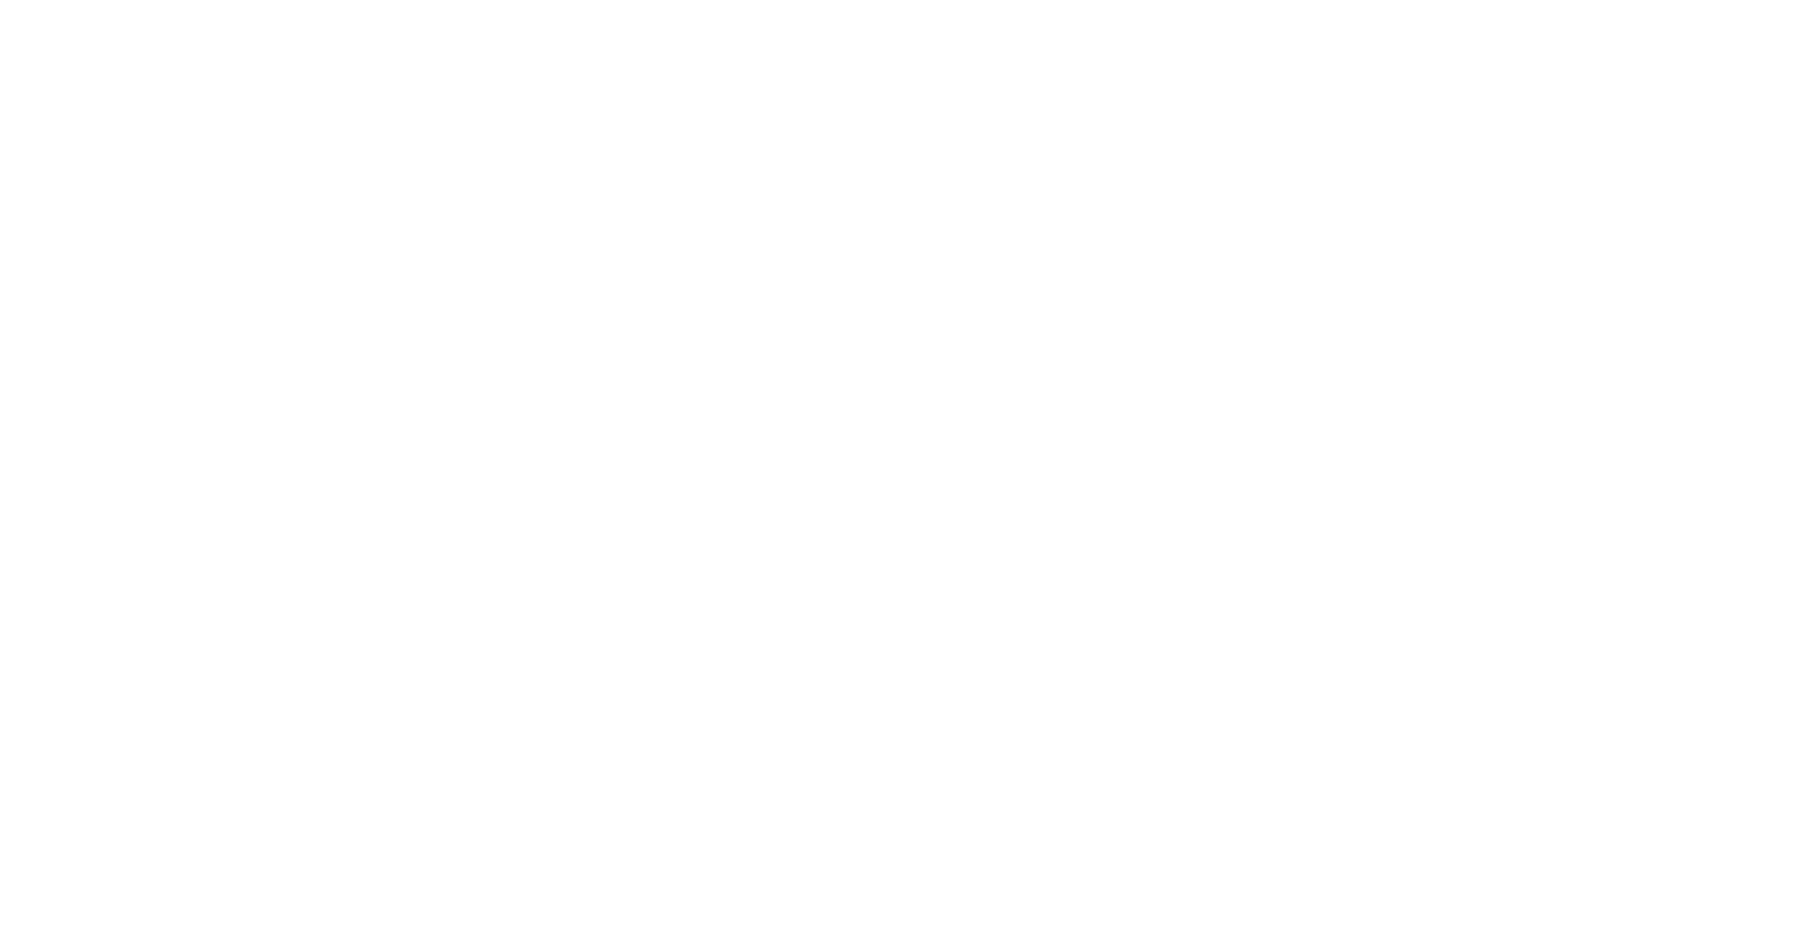 Bestpak Manufacturing Enterprise, Inc. white logo